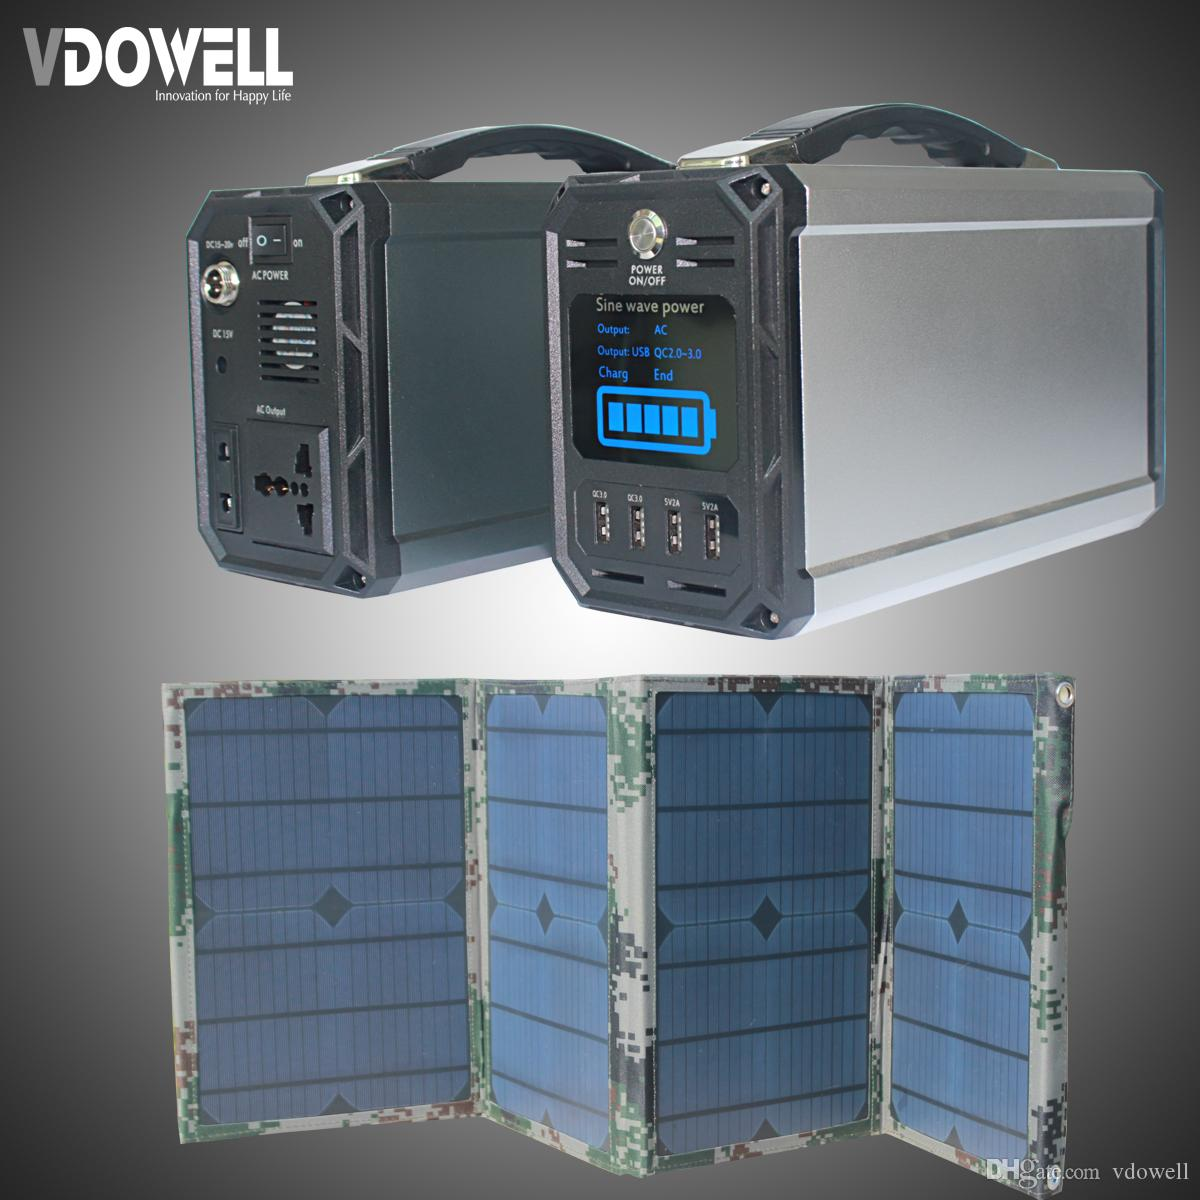 300wh 60000mah High Capacity Battery Solar Portable Power Station Charger With Overcharge Protection Electronic Electric Energy Storage Box 30w Panel Ac 220 110v Usb Qc30